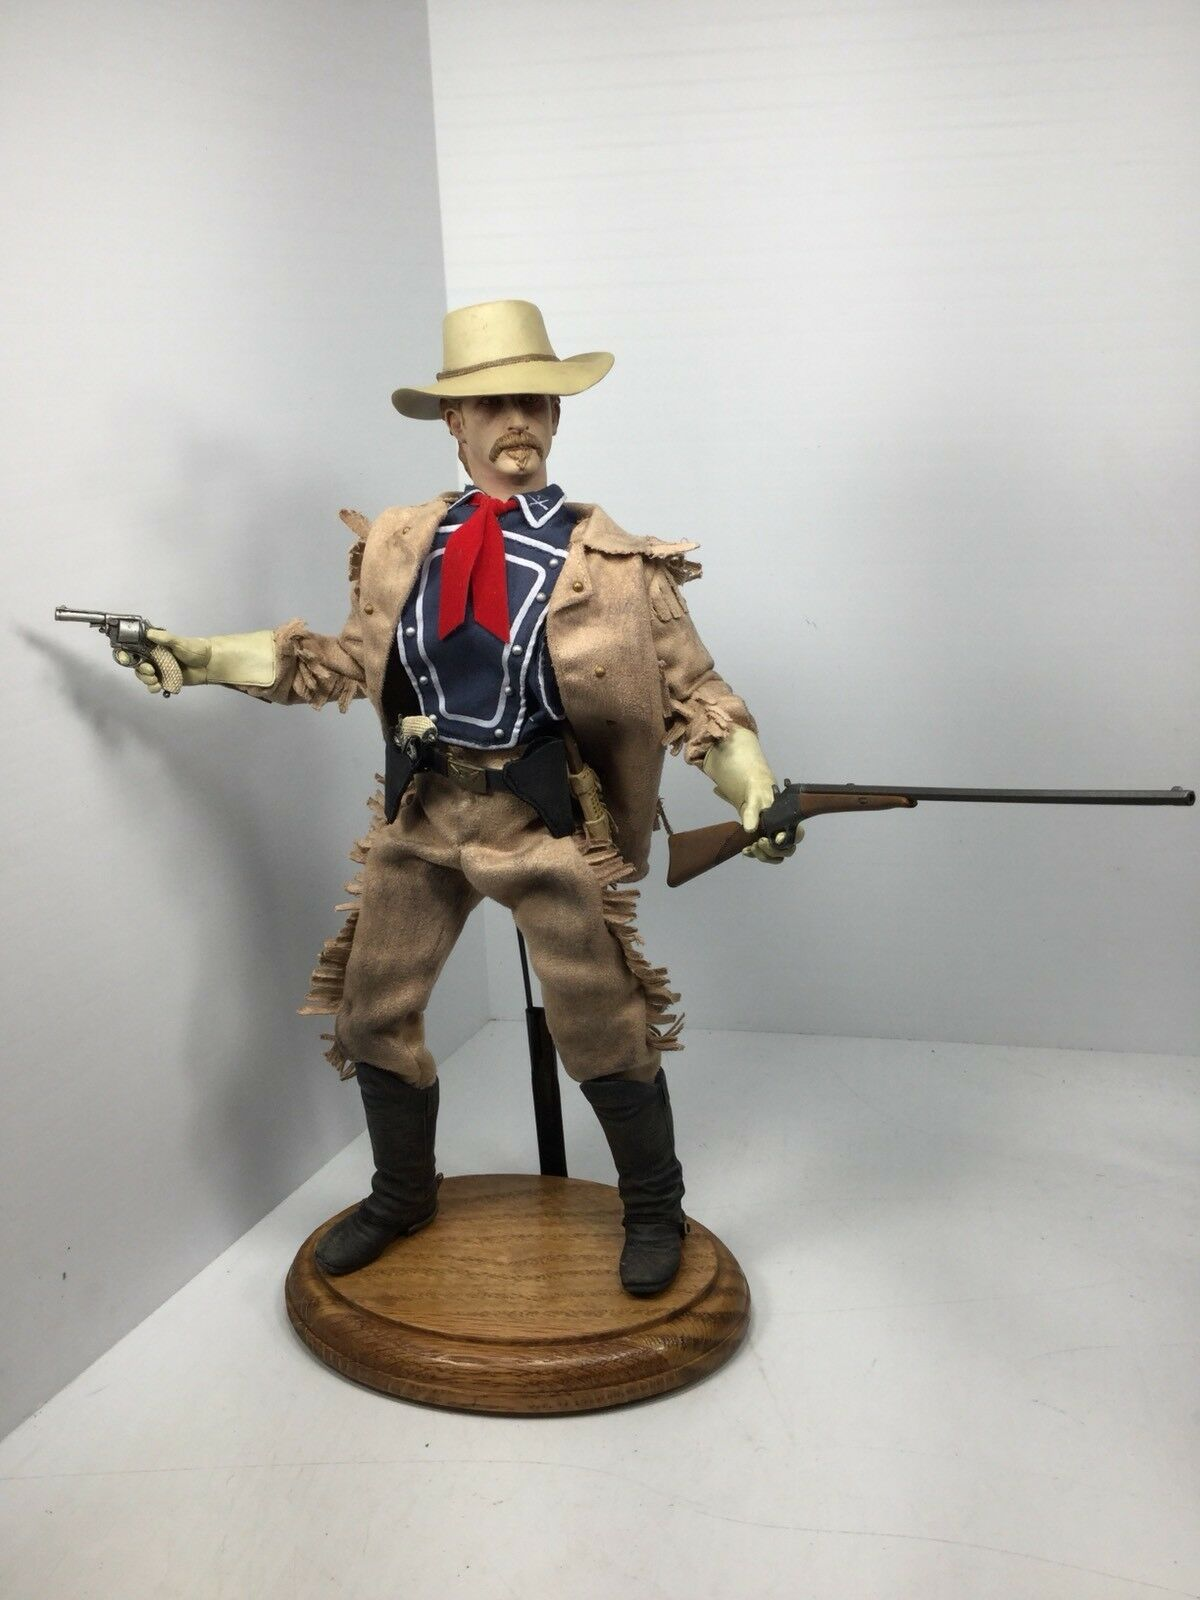 16 SIDESHOW LT. Col. George A. Custer 2-Webley 's & Remington No.1 Dragon BBI DID